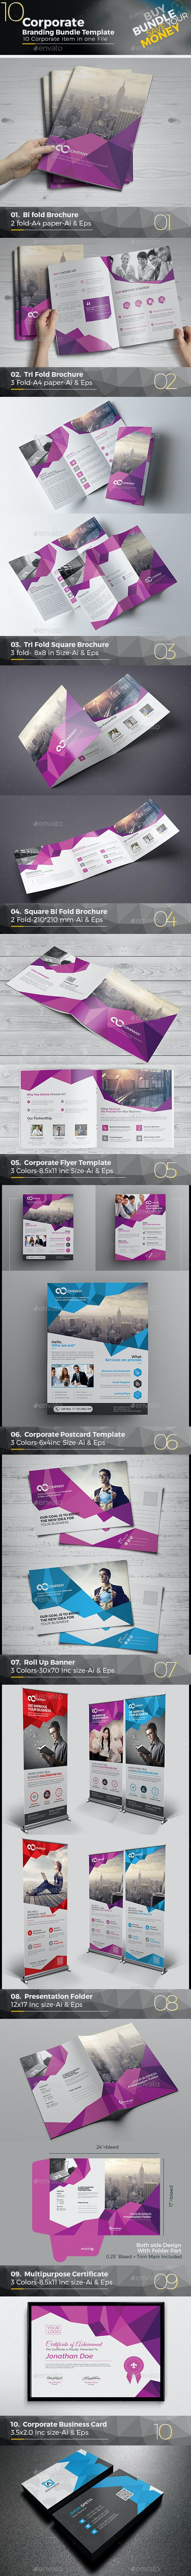 Abstract Mega Branding Bundle - Brochures Print Templates